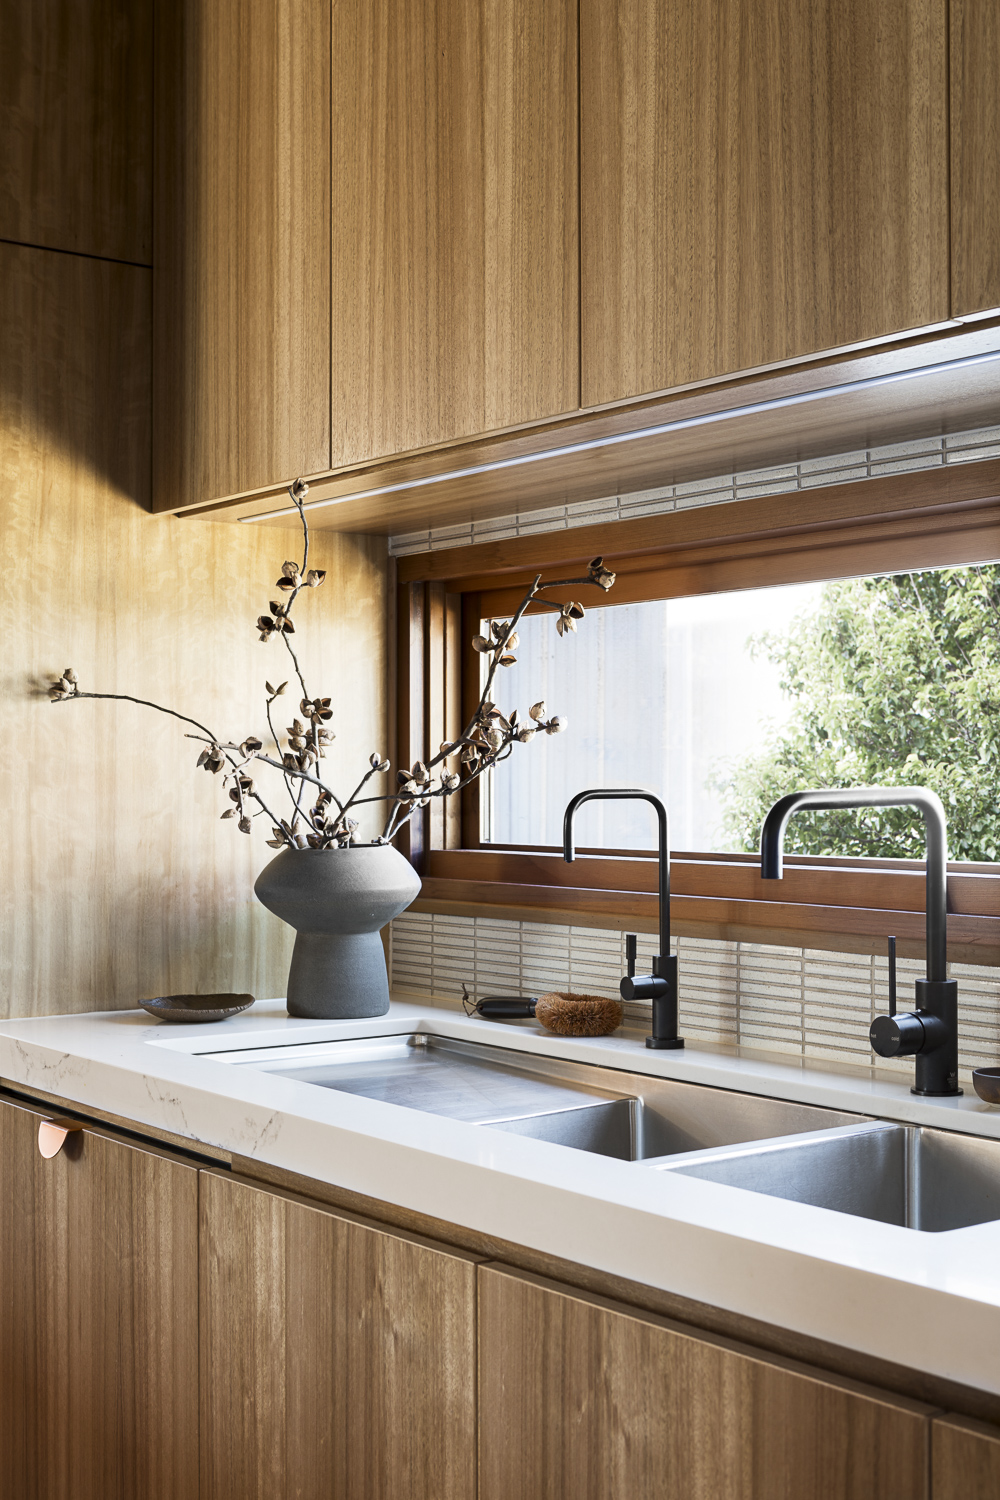 Cantilever K2 Kitchen System at Stewart Street for Stavrias Architecture (4).jpg